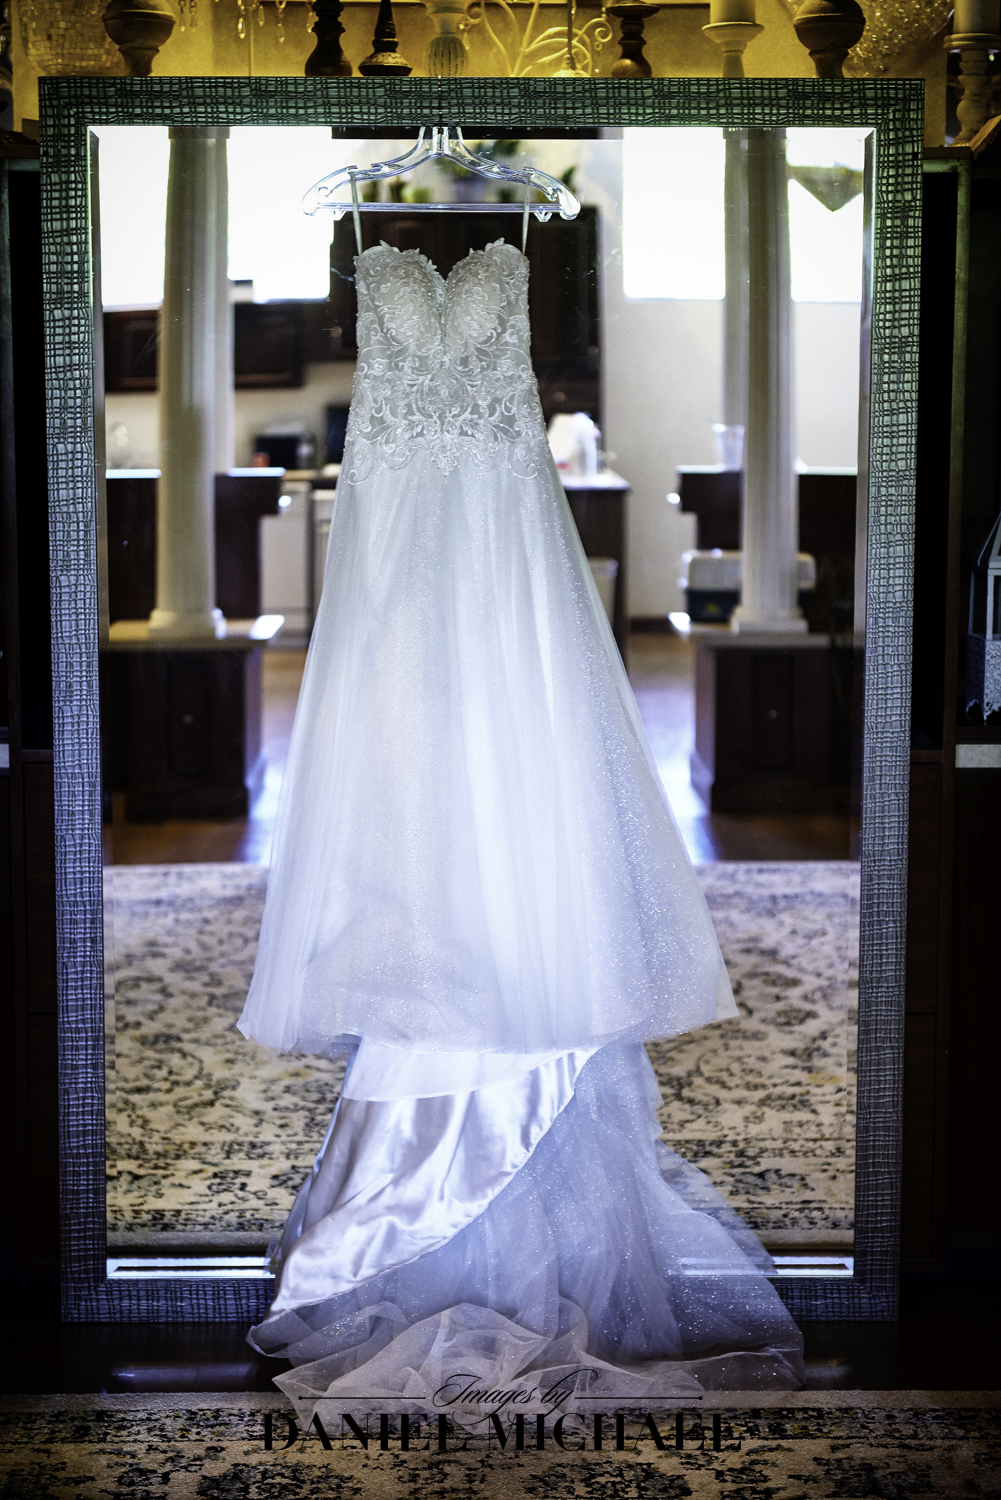 BoChic Bridal Wedding Dress Photo